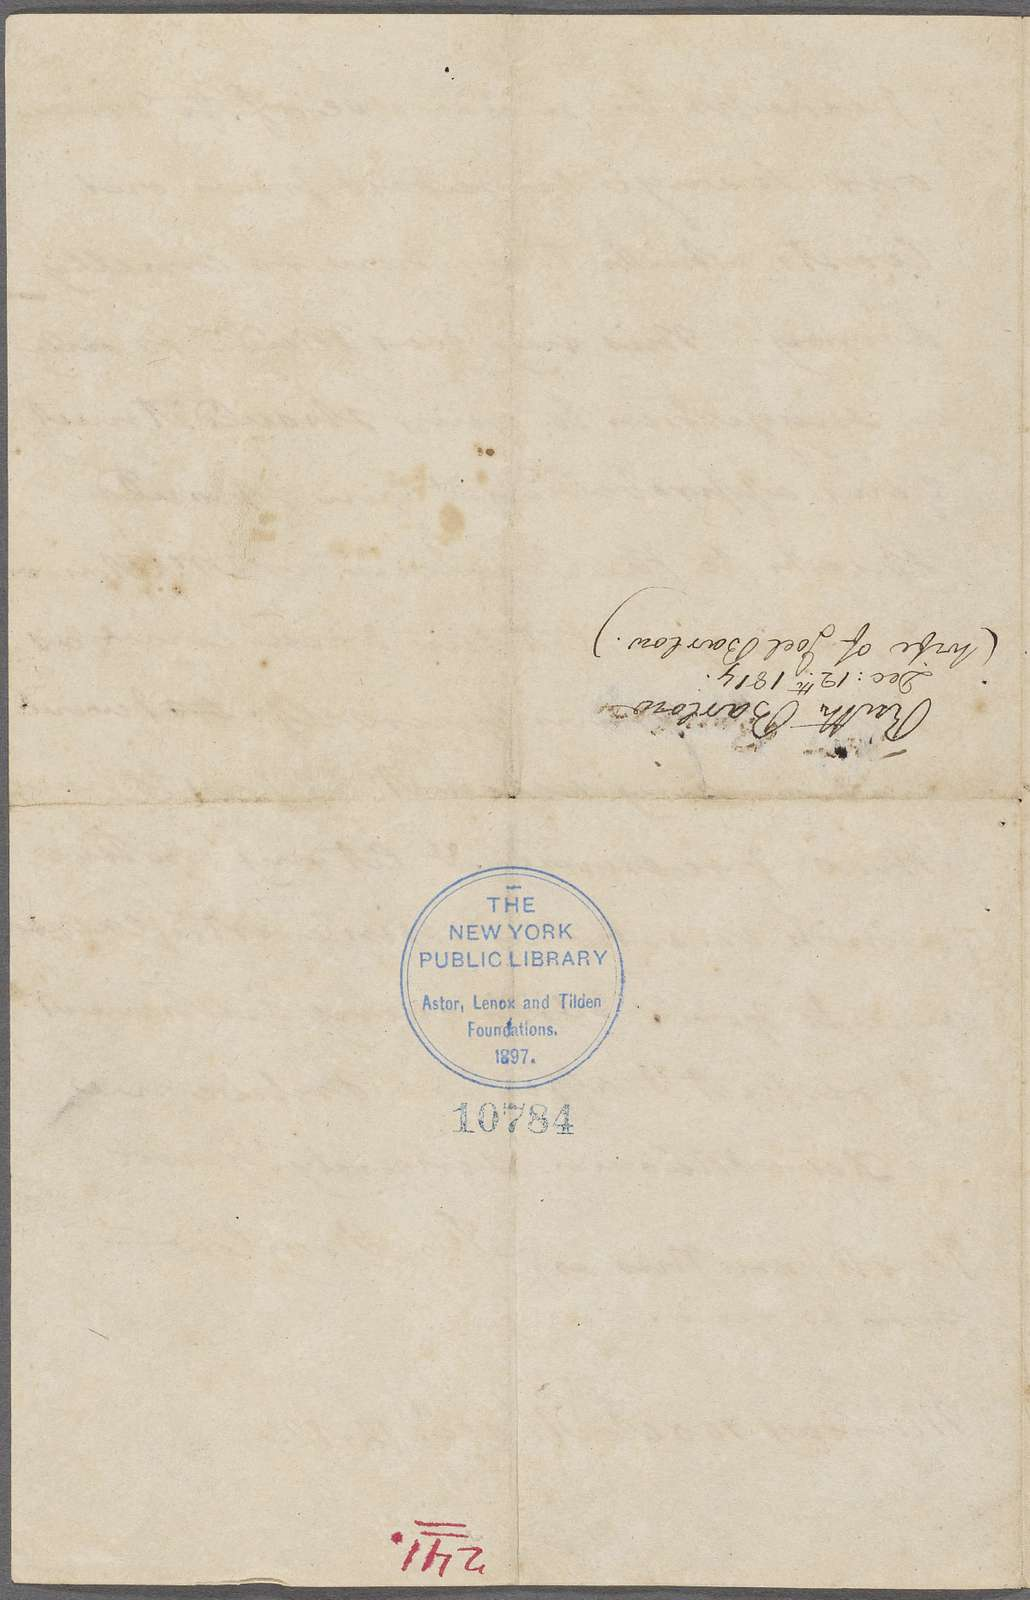 Letter from Ruth Barlow to Dolley Madison